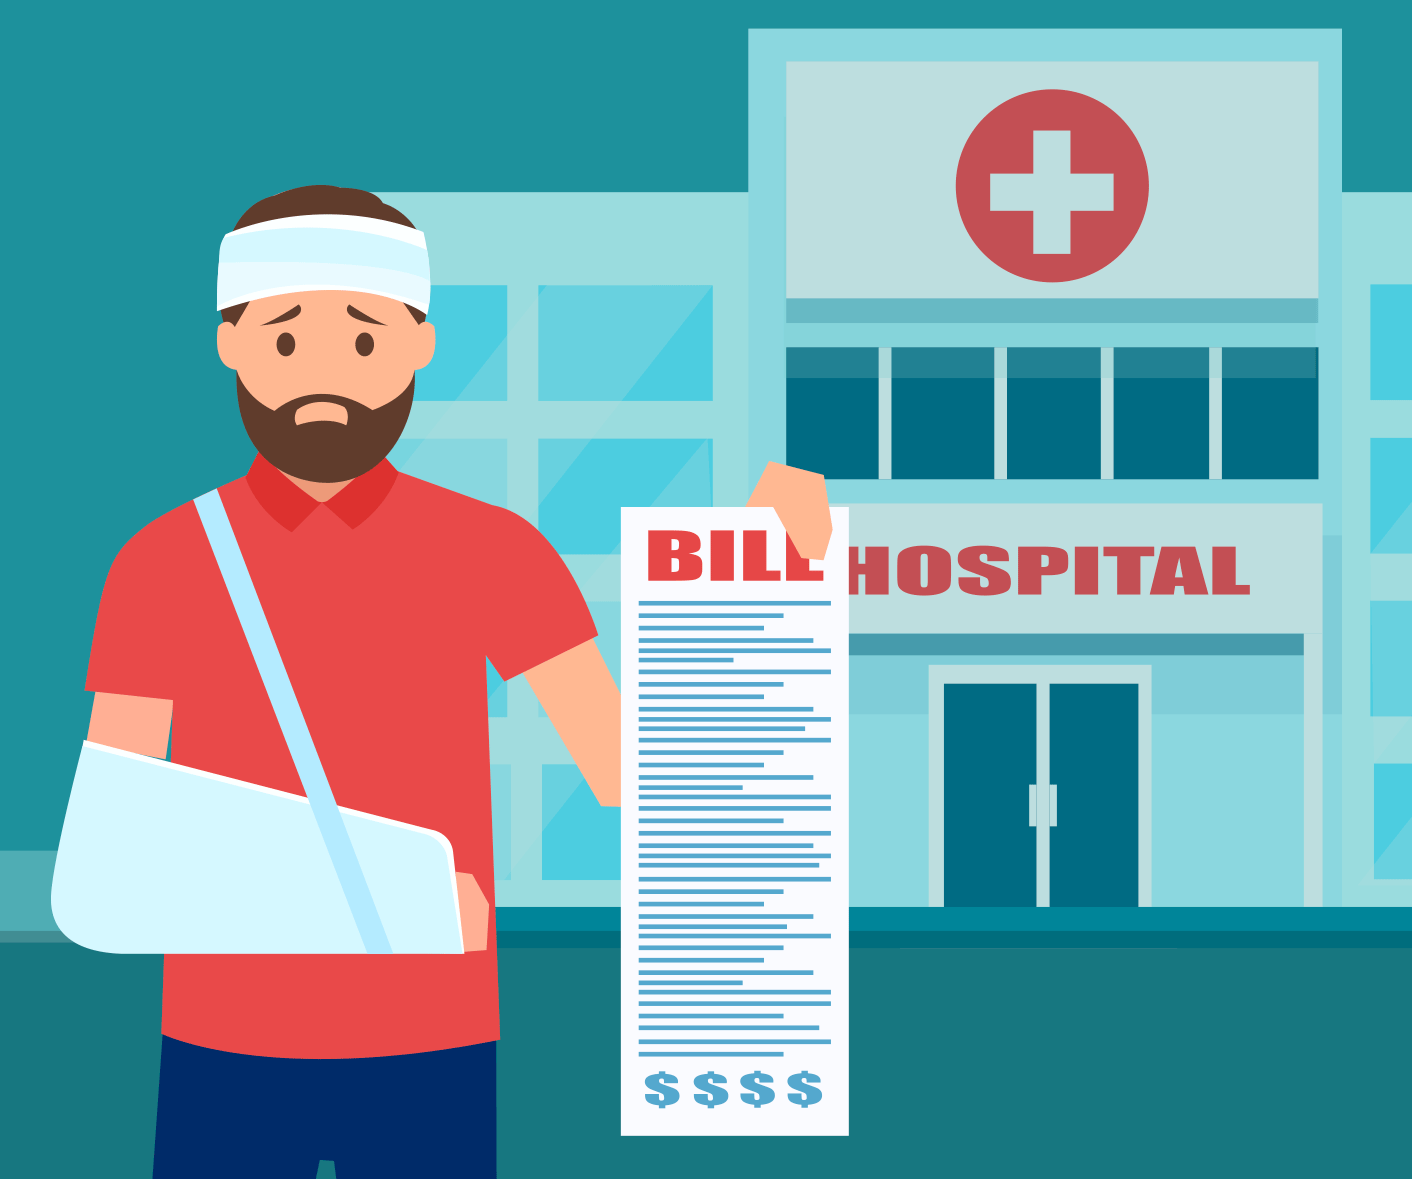 man with large hospital bill